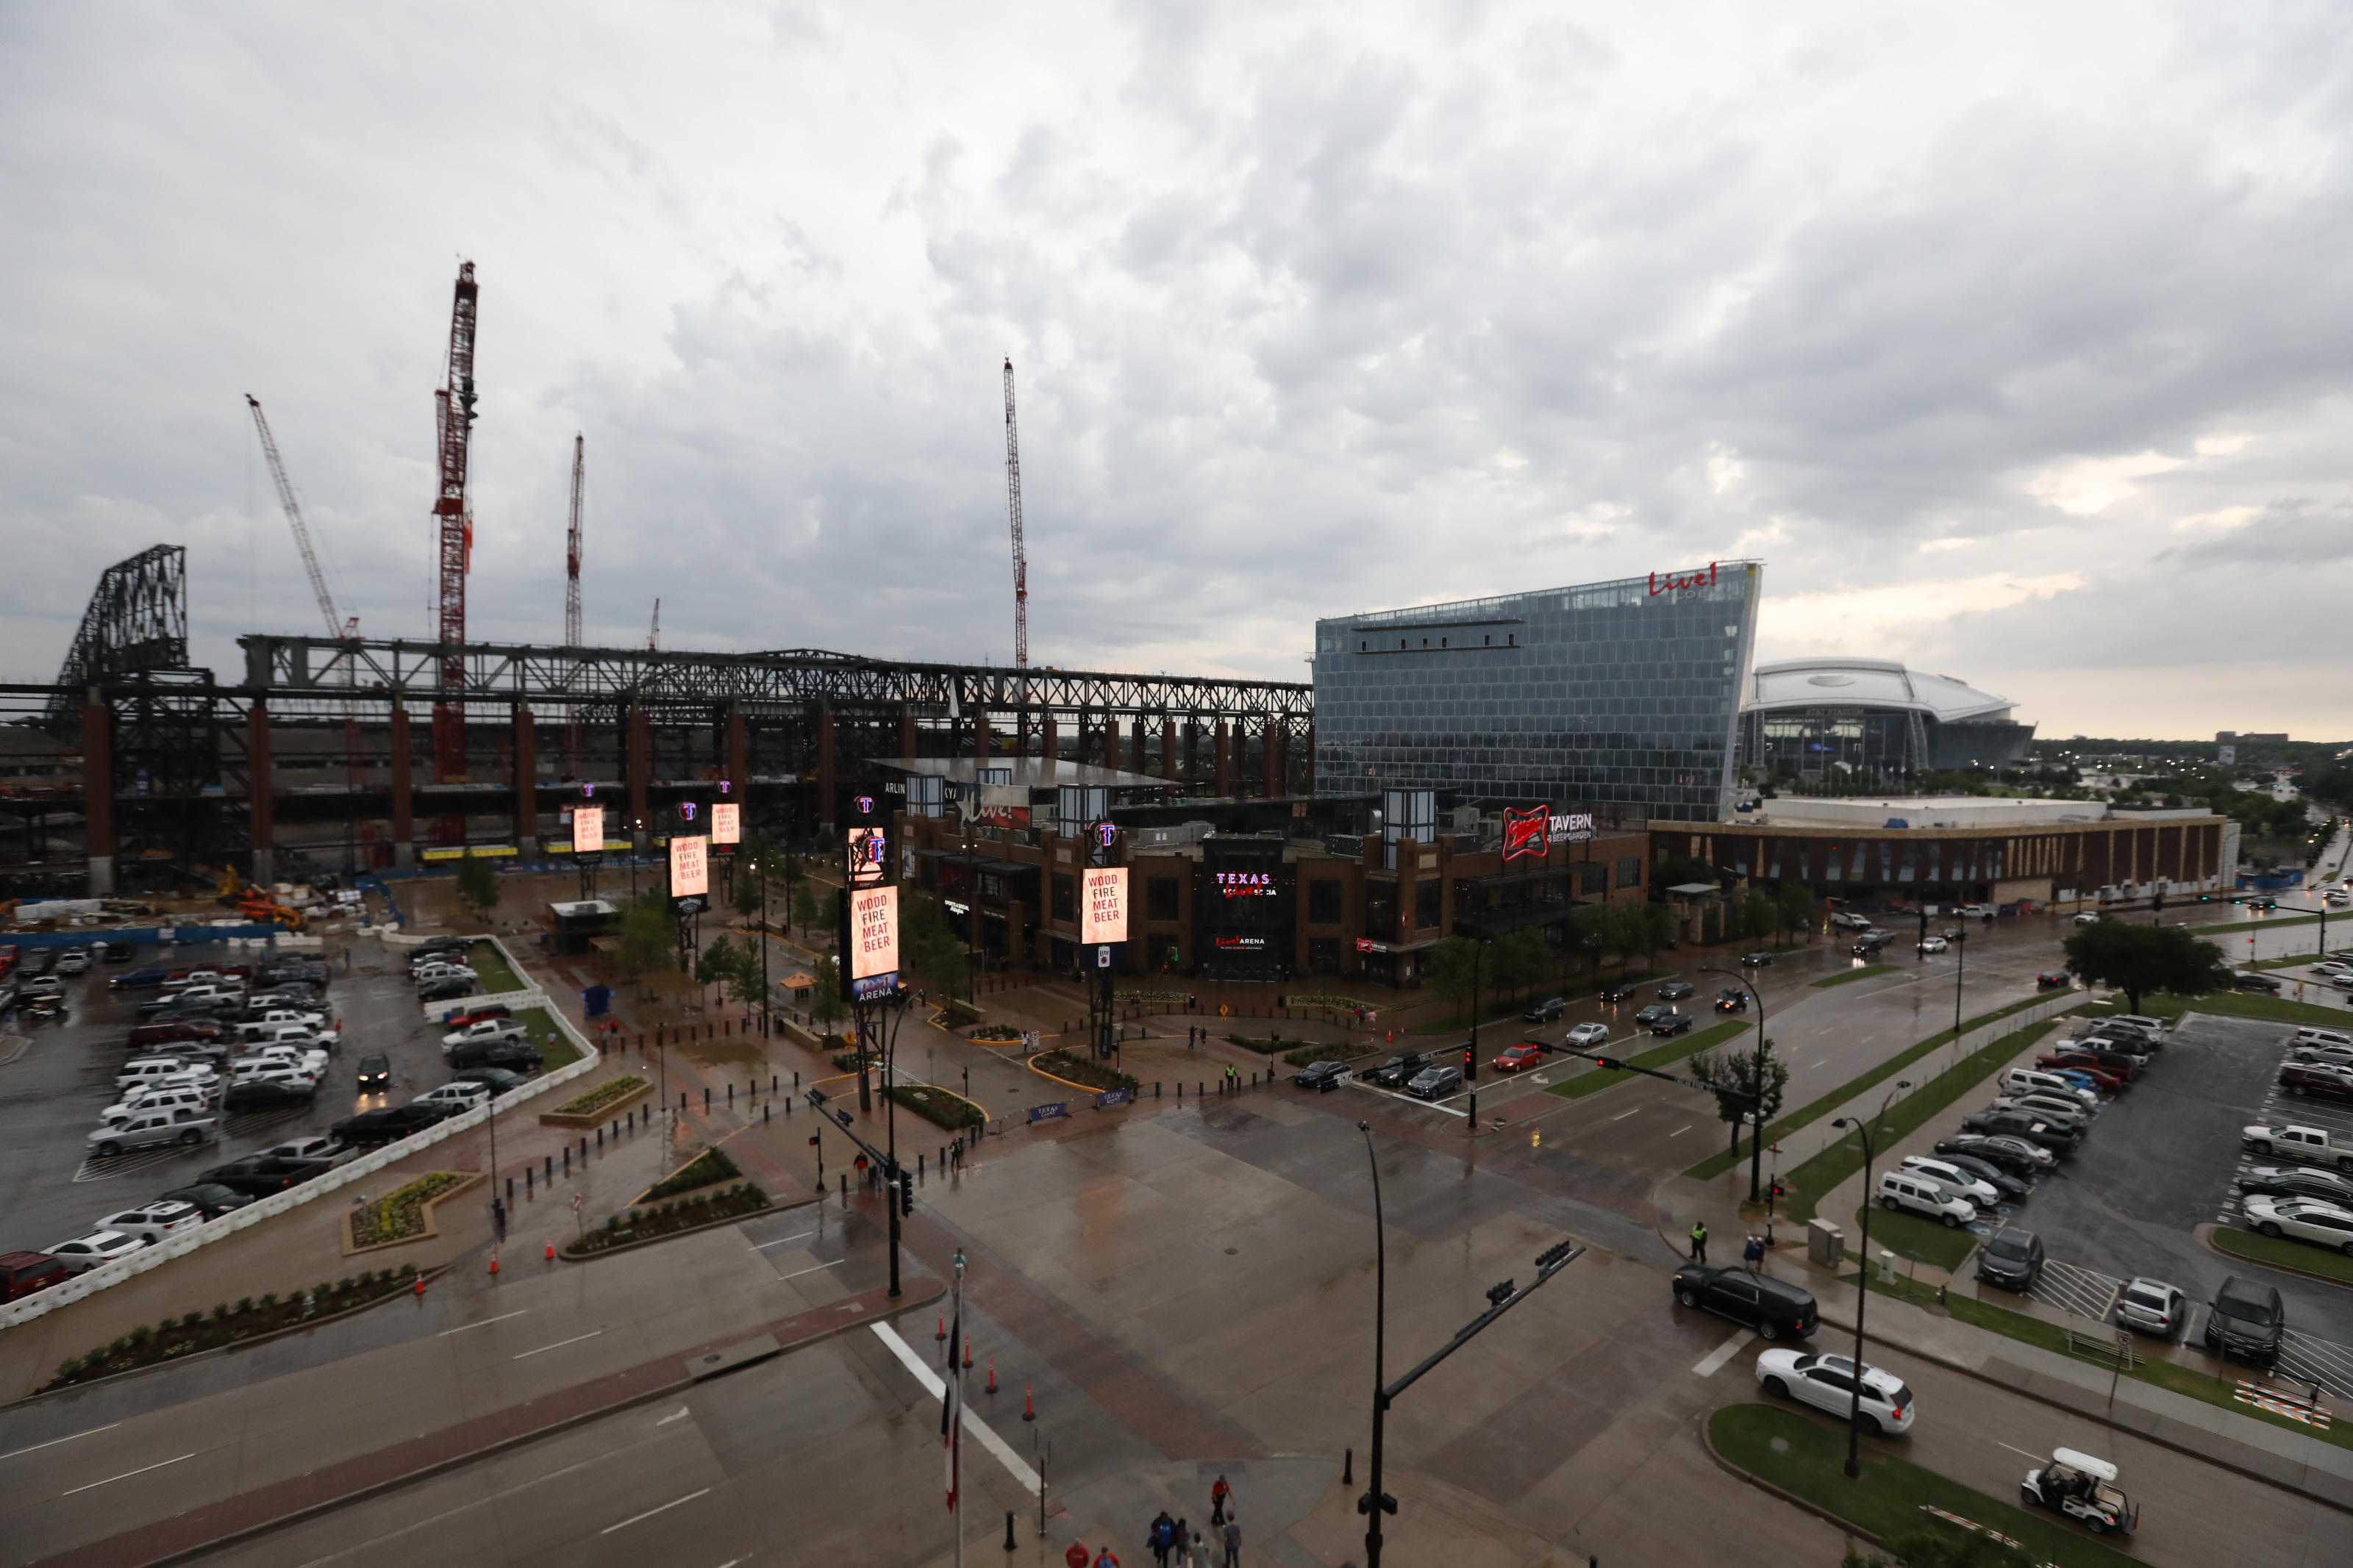 Texas Rangers: Globe Life Field likely to host MLB All-Star Game in near future